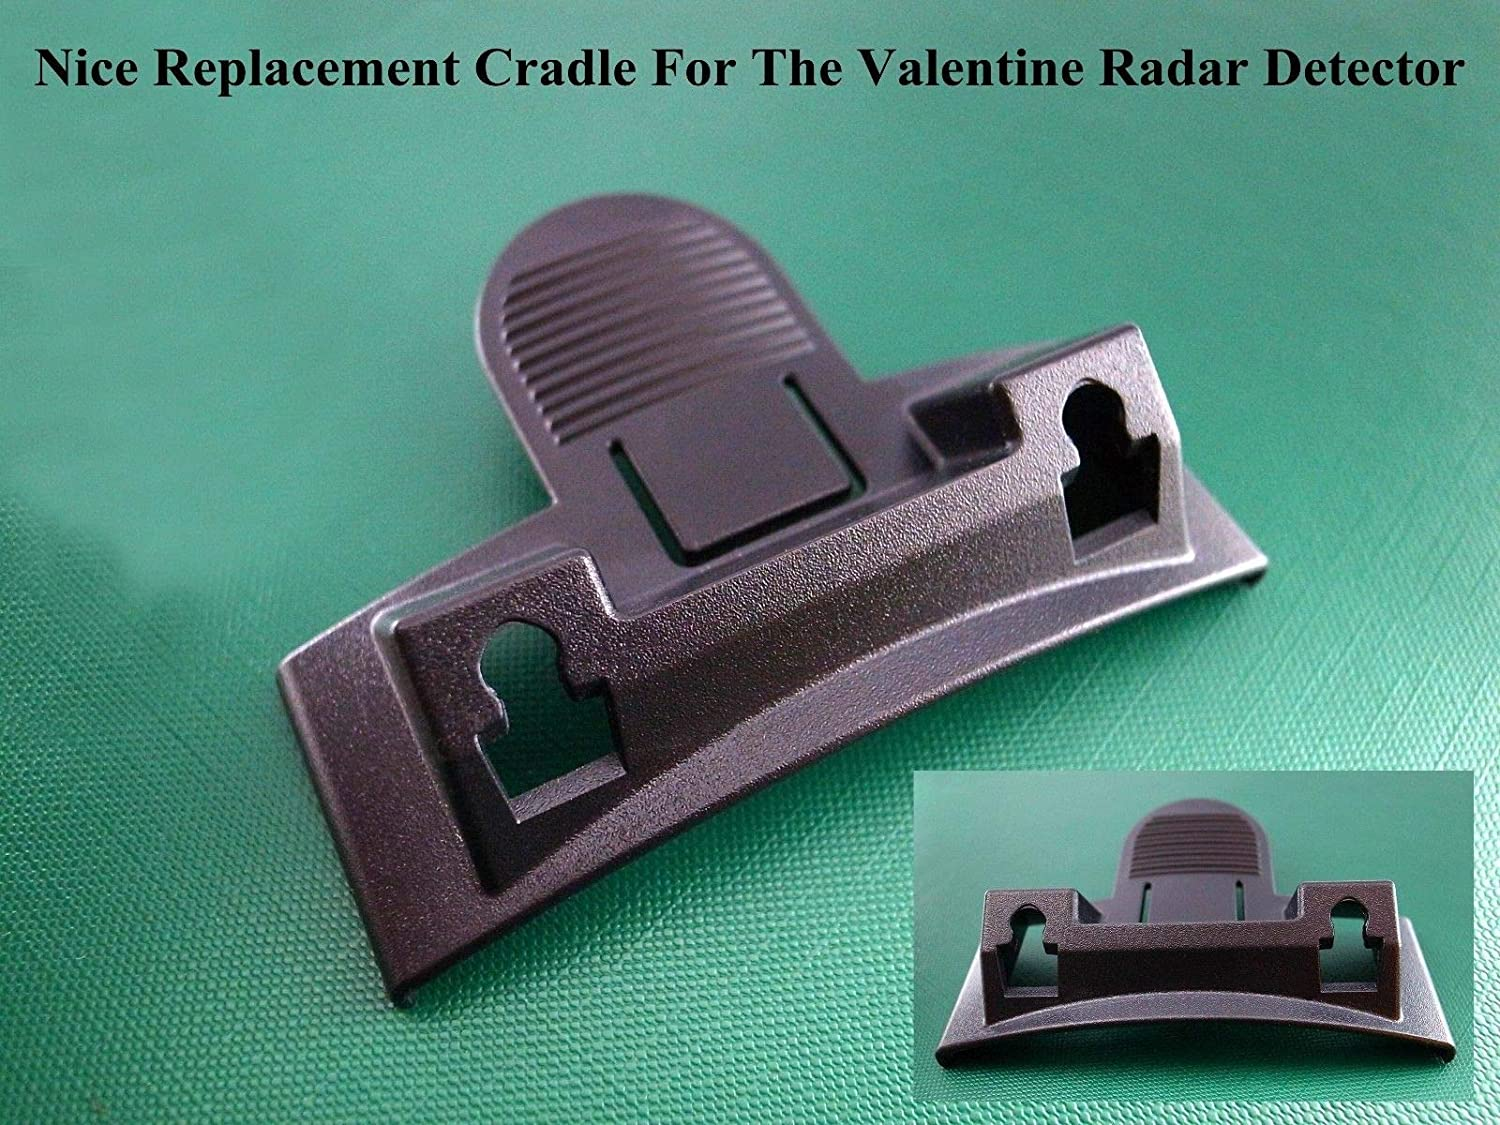 VSCL Plastic Replacement Cradle Mount for Valentine V1 Radar Detectors Radargun